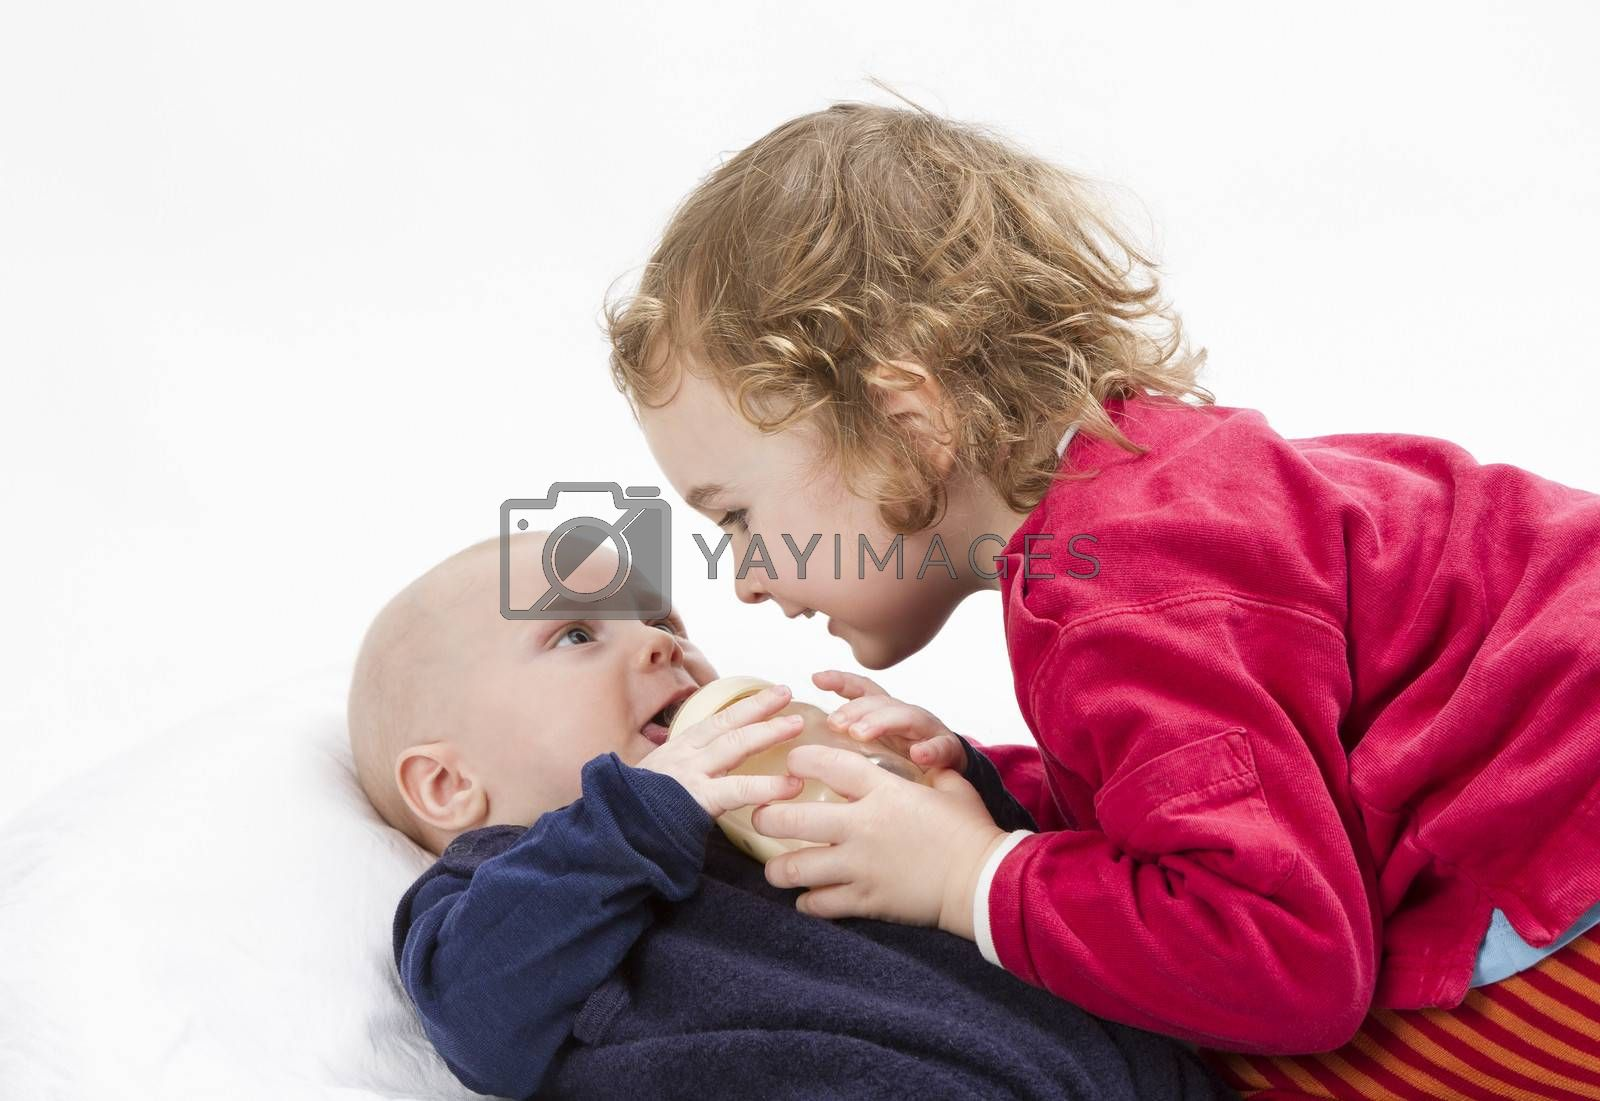 Royalty free image of baby boy with older sister by gewoldi